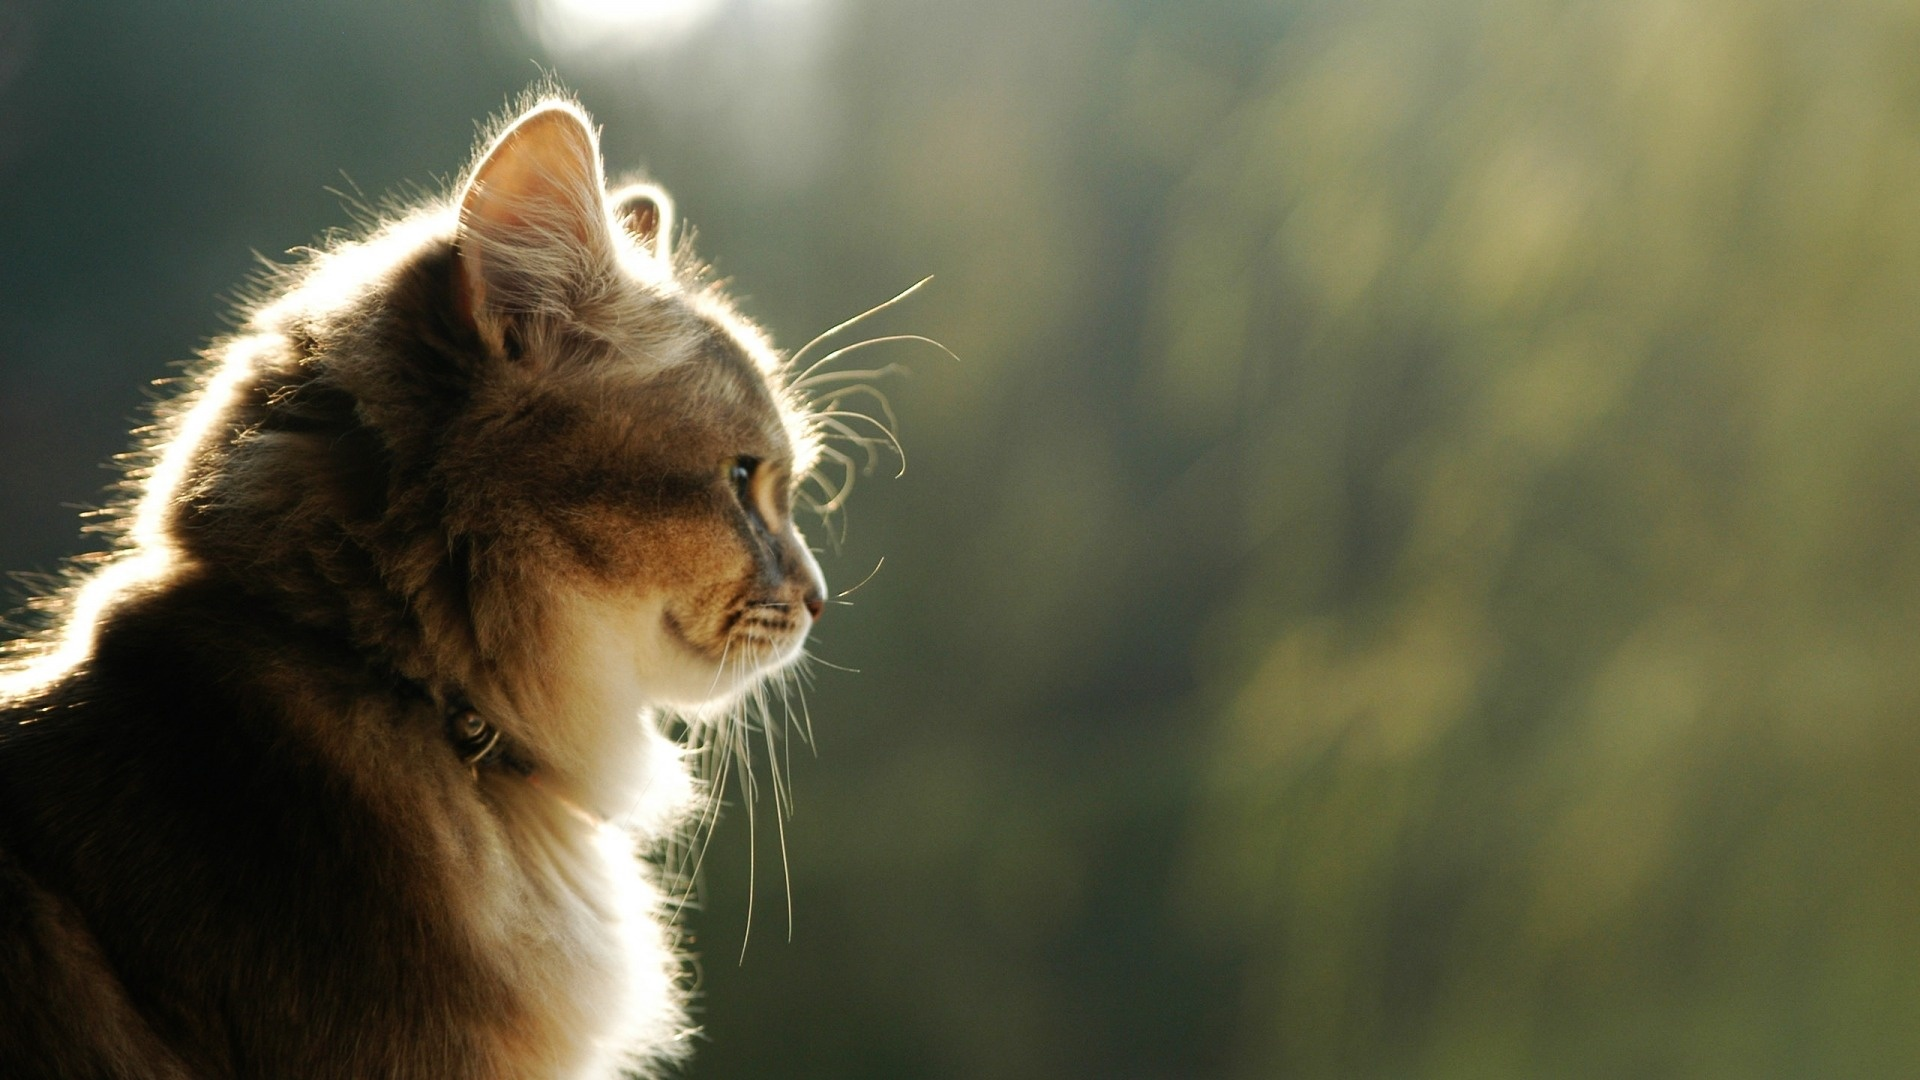 50 Free HD Cat Wallpapers